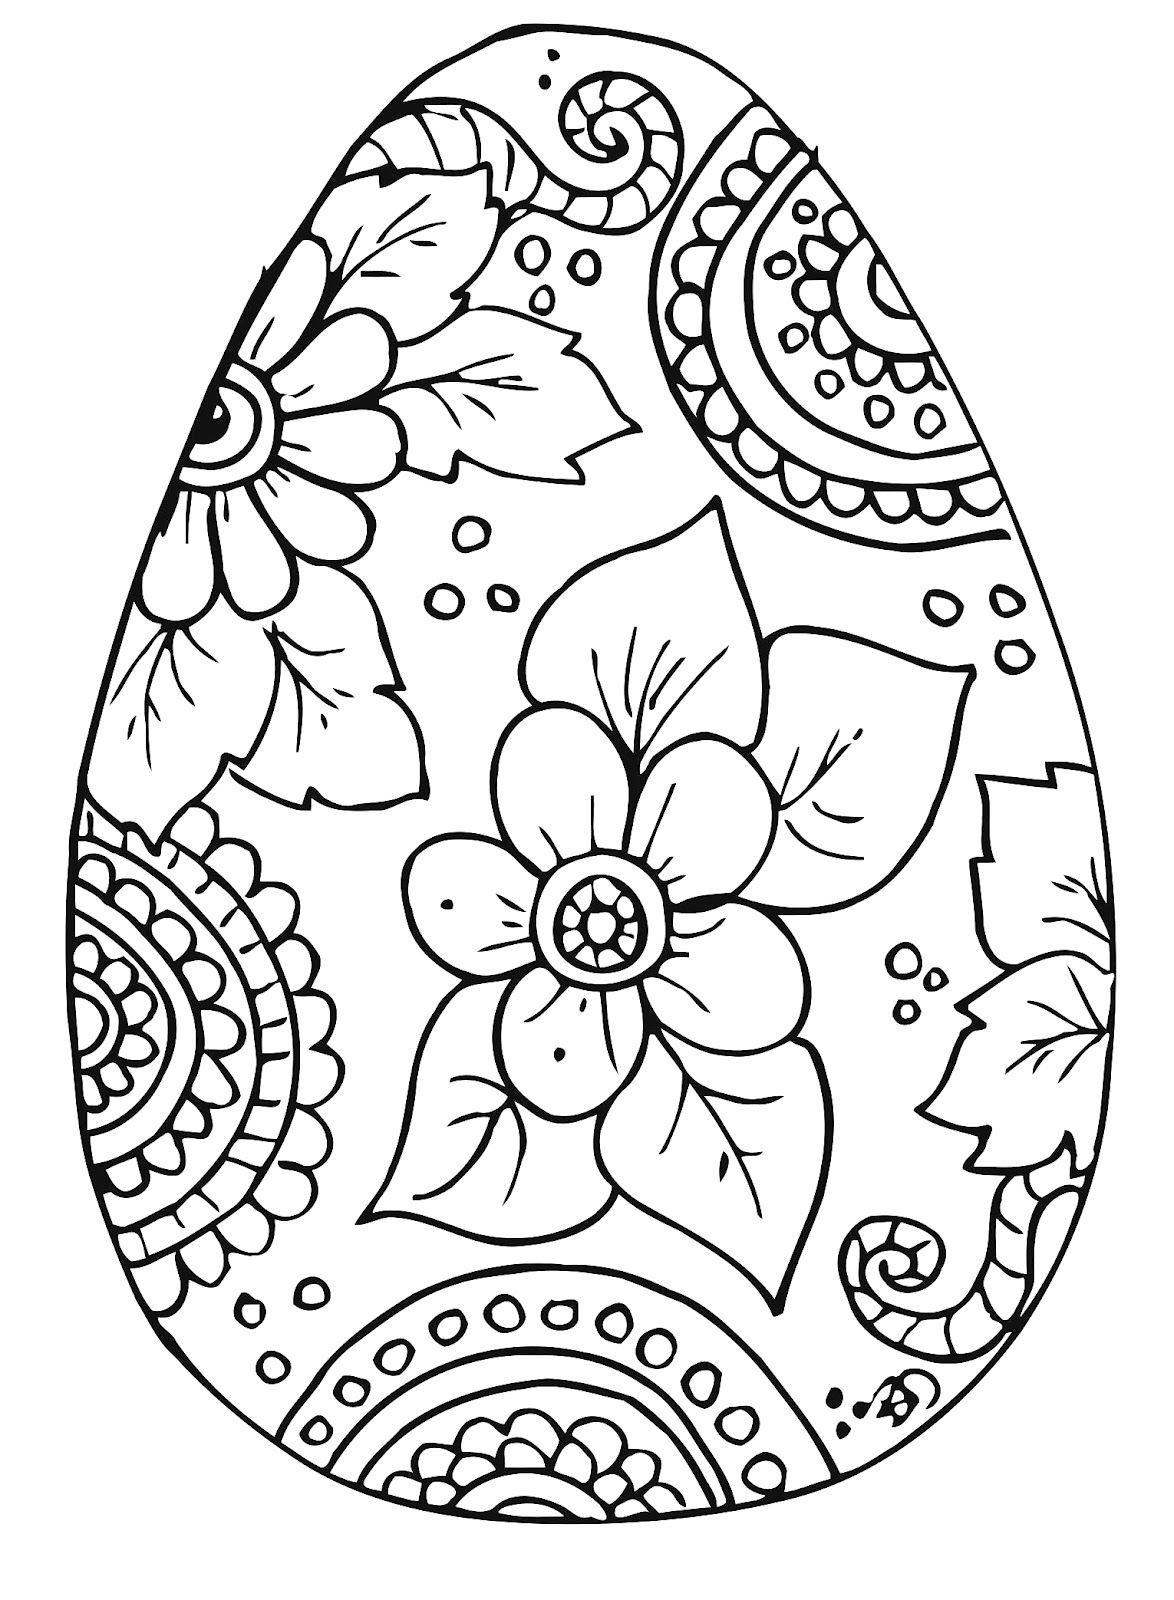 Easteregg Easter Egg Coloring Pages Coloring Easter Eggs Easter Coloring Pages